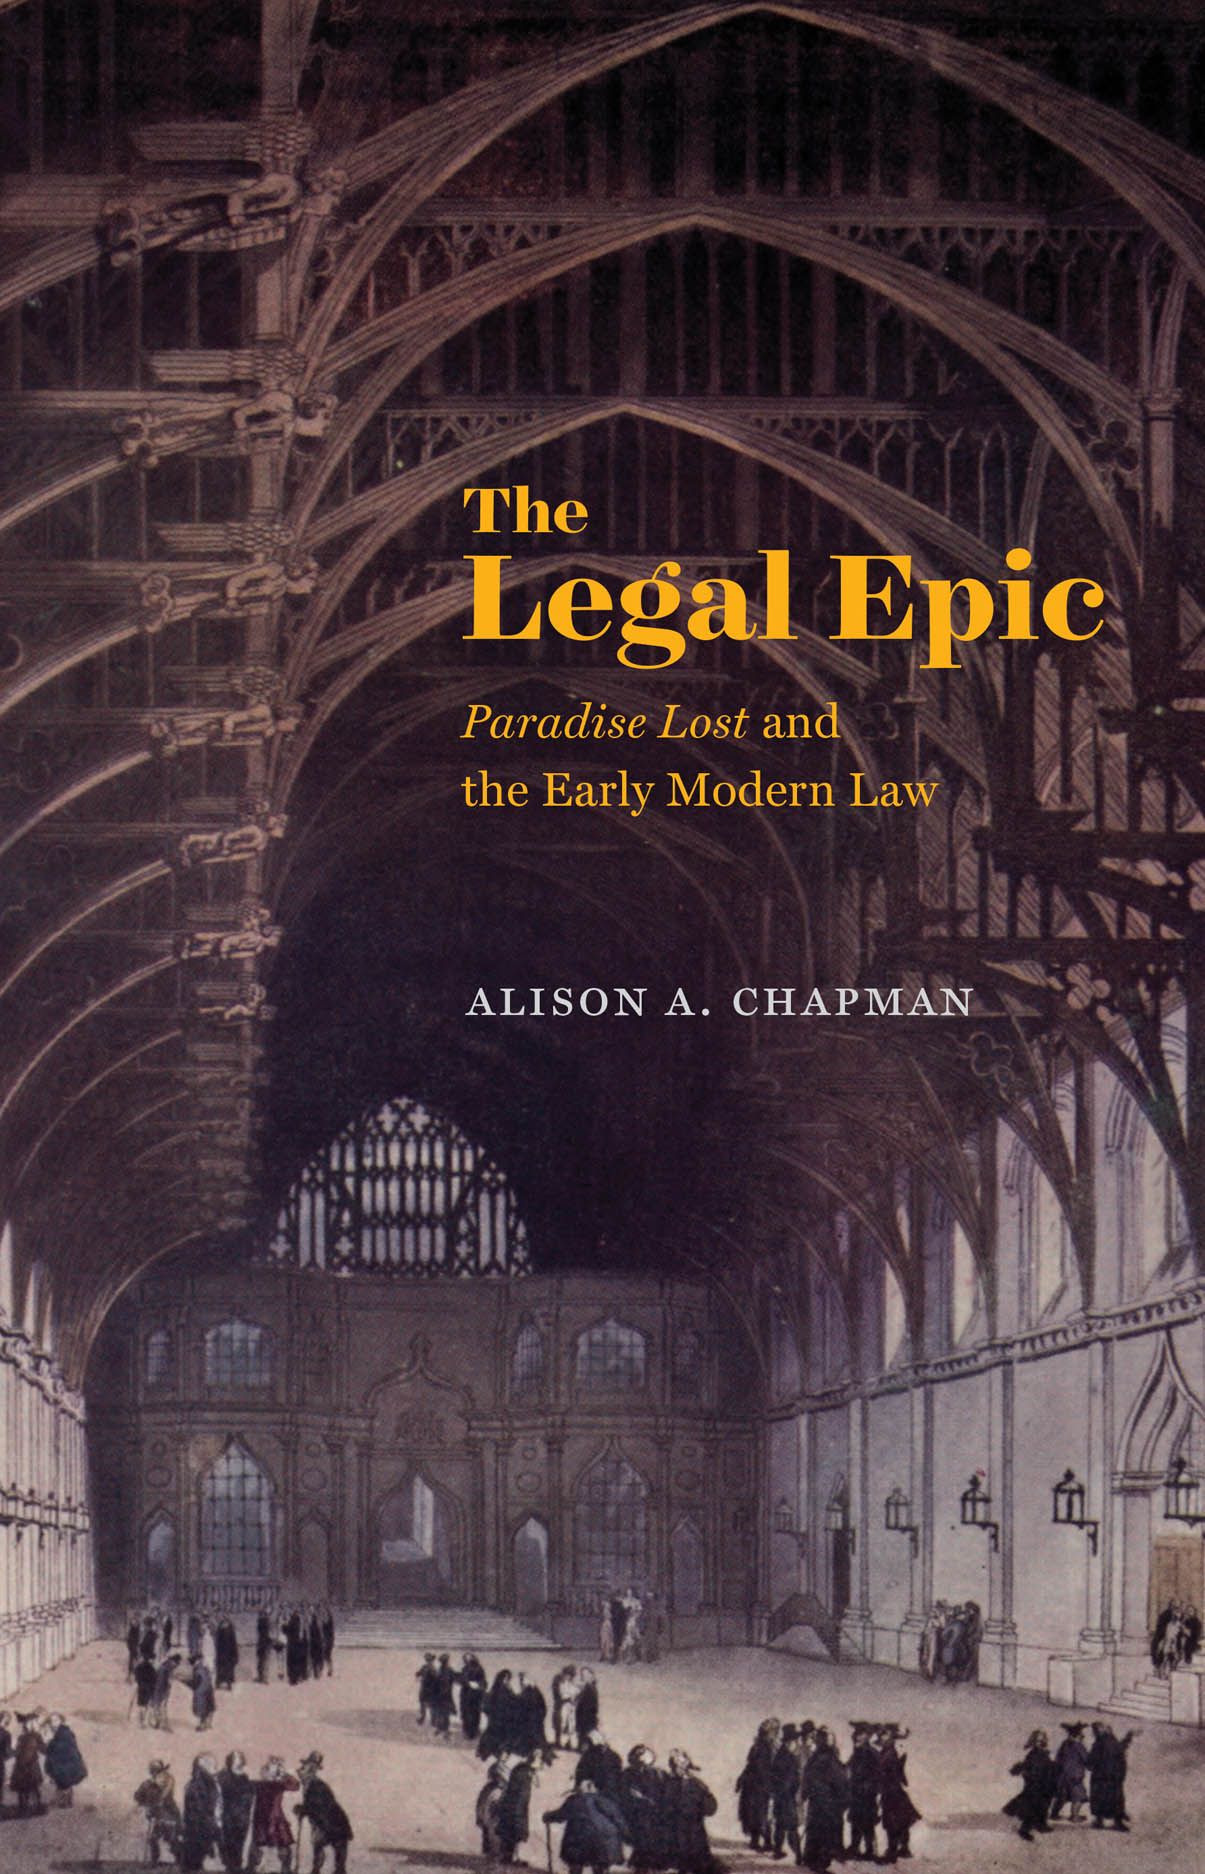 The Legal Epic: